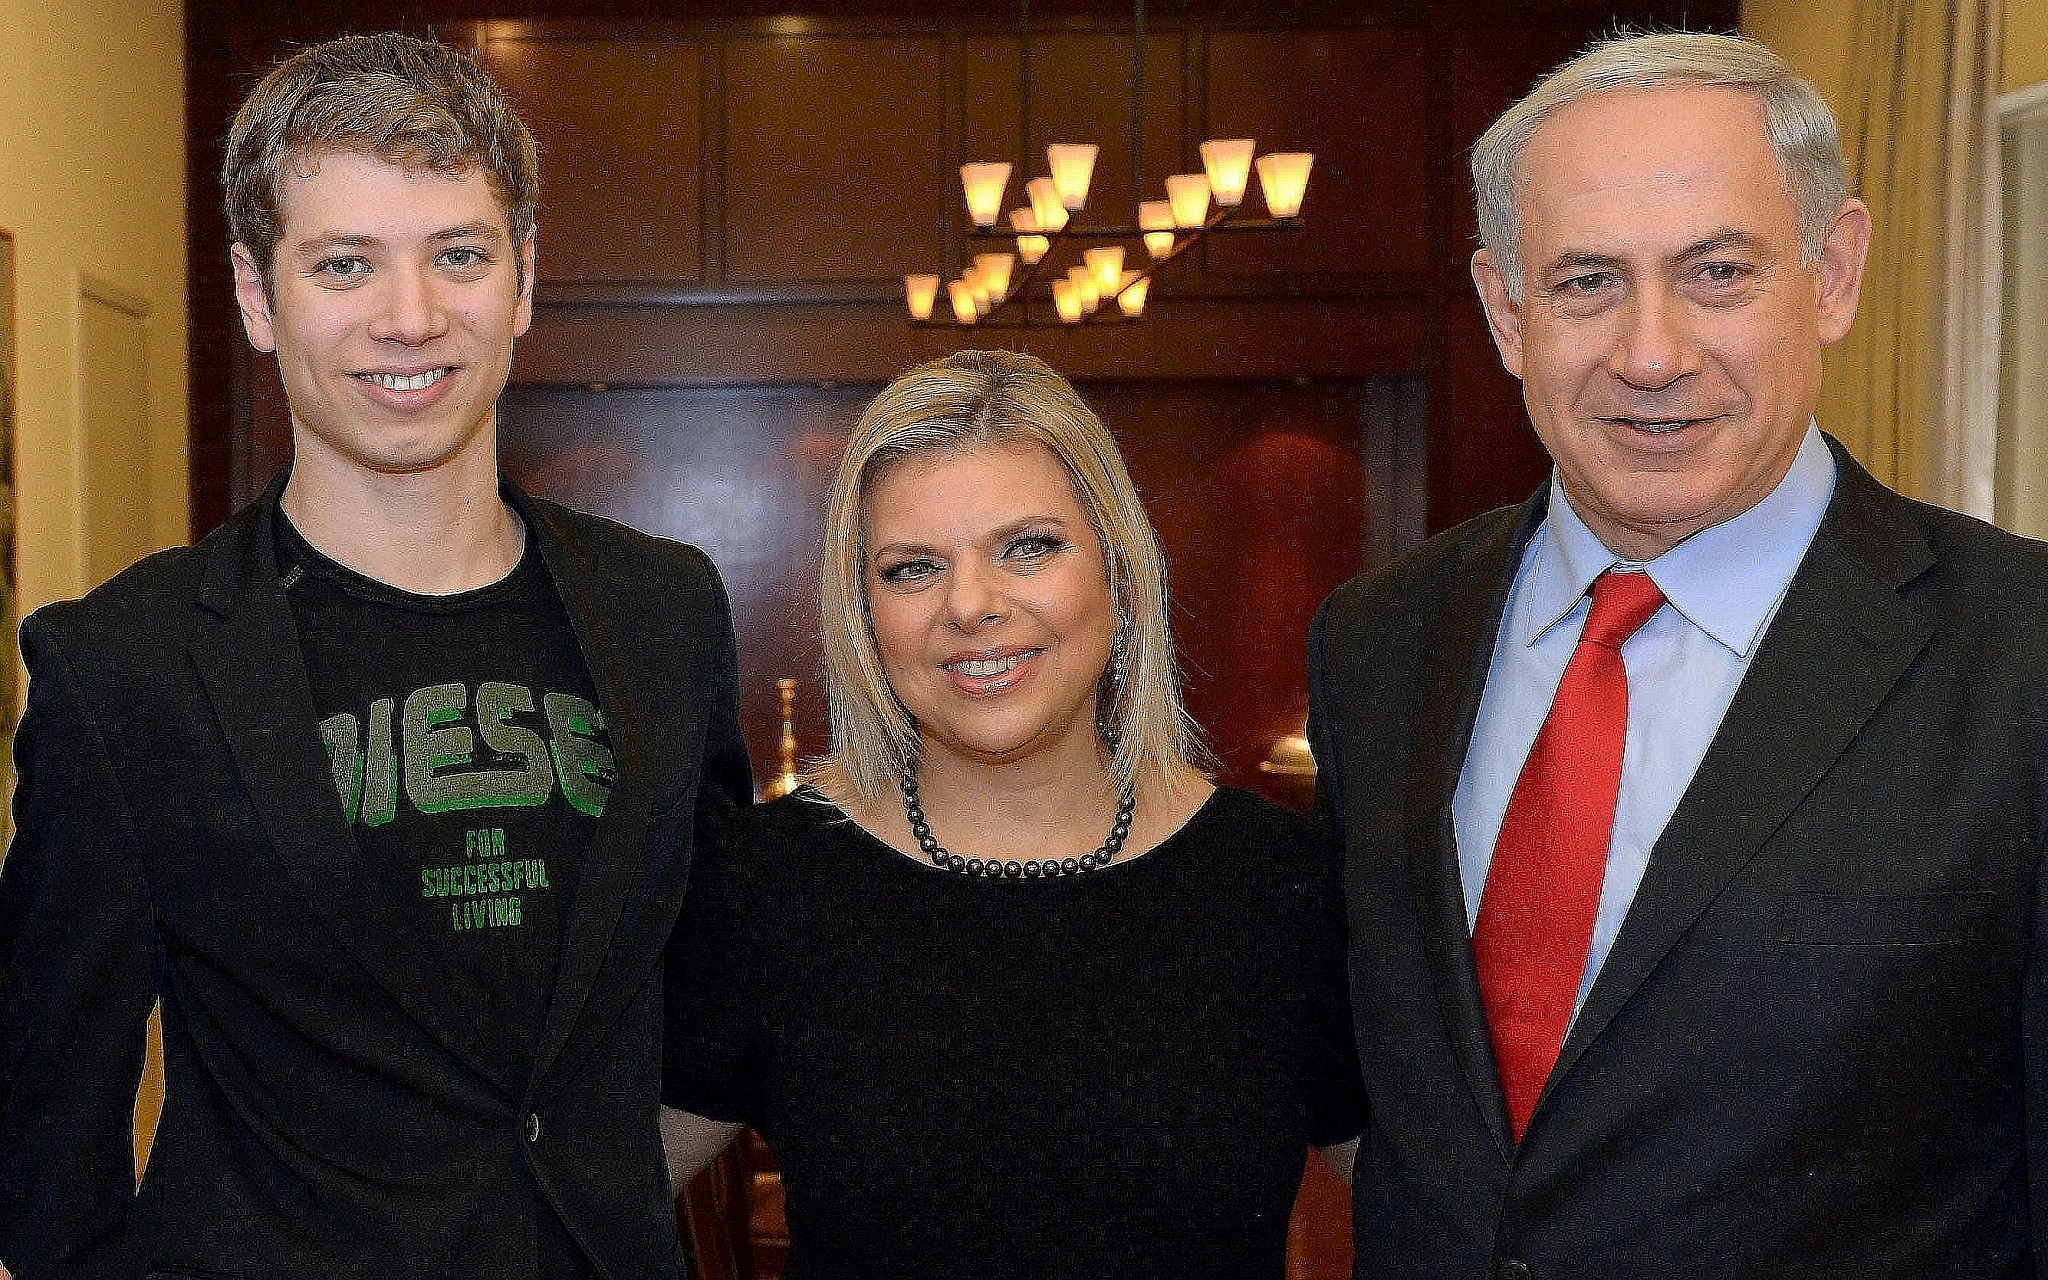 Israeli Prime Minister Benjamin Netanyahu, his wife Sara, and their son Yair during a meeting with Dutch Prime Minister Mark Rutte, not pictured, at Netanyahu's official residence in Jerusalem on December 8, 2013. (Haim Zach/GPO/Flash90)